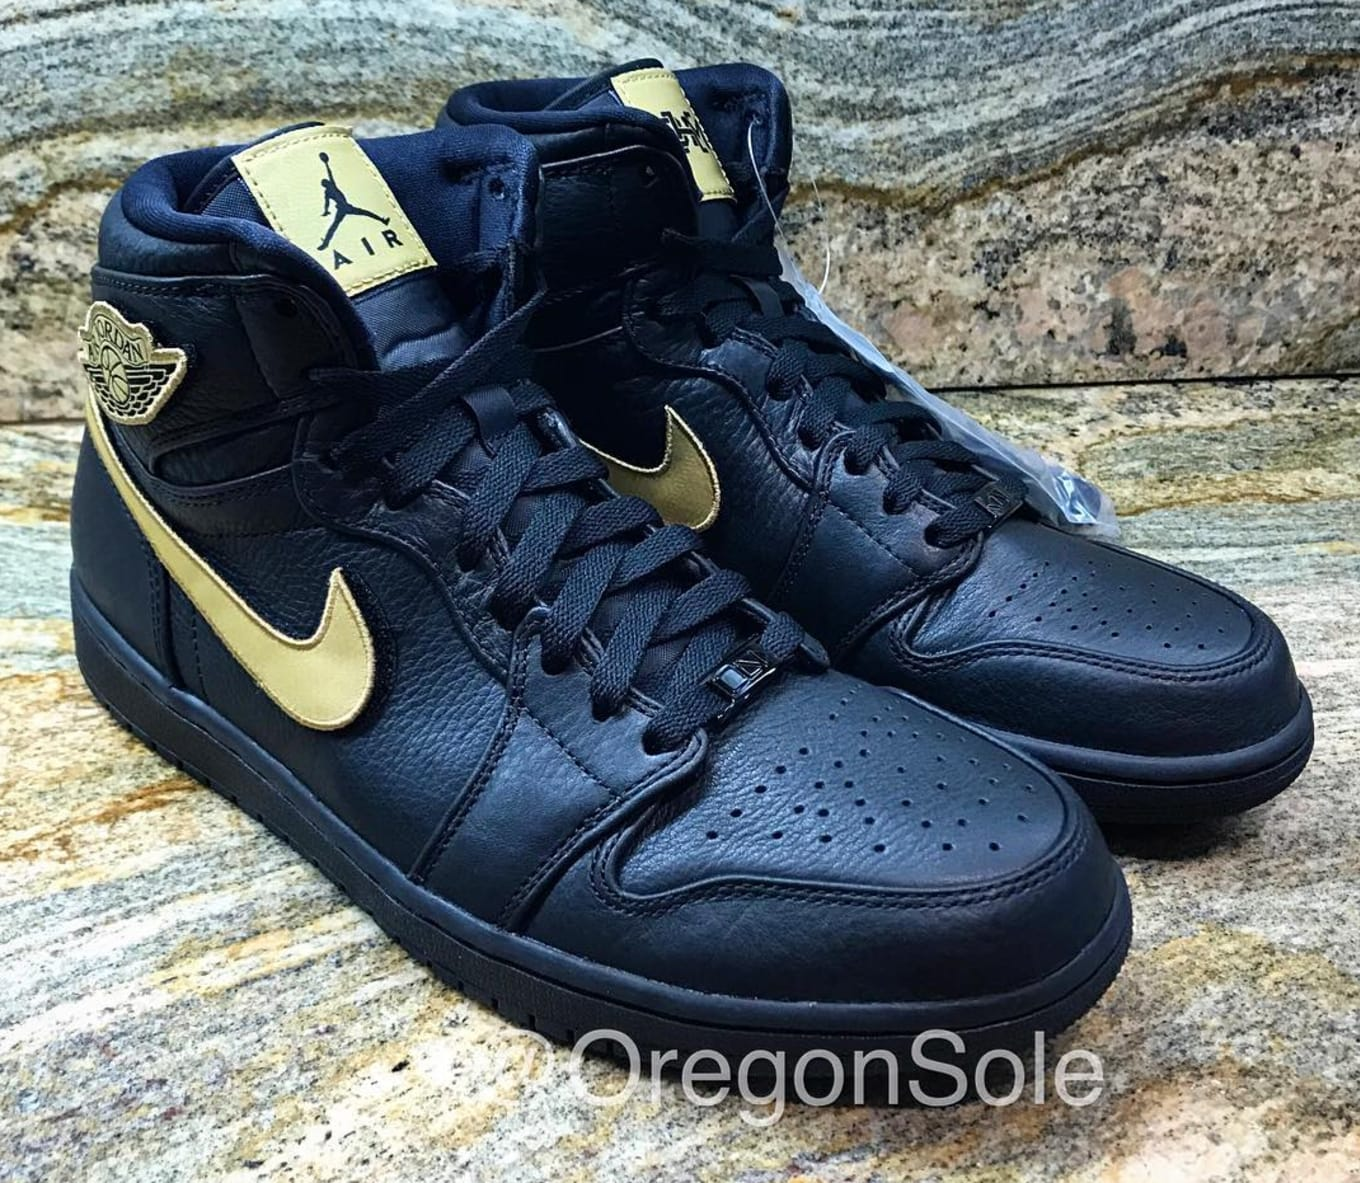 7049cfa316e1b6 Black and gold Jordan 1s releasing on Feb. 11.